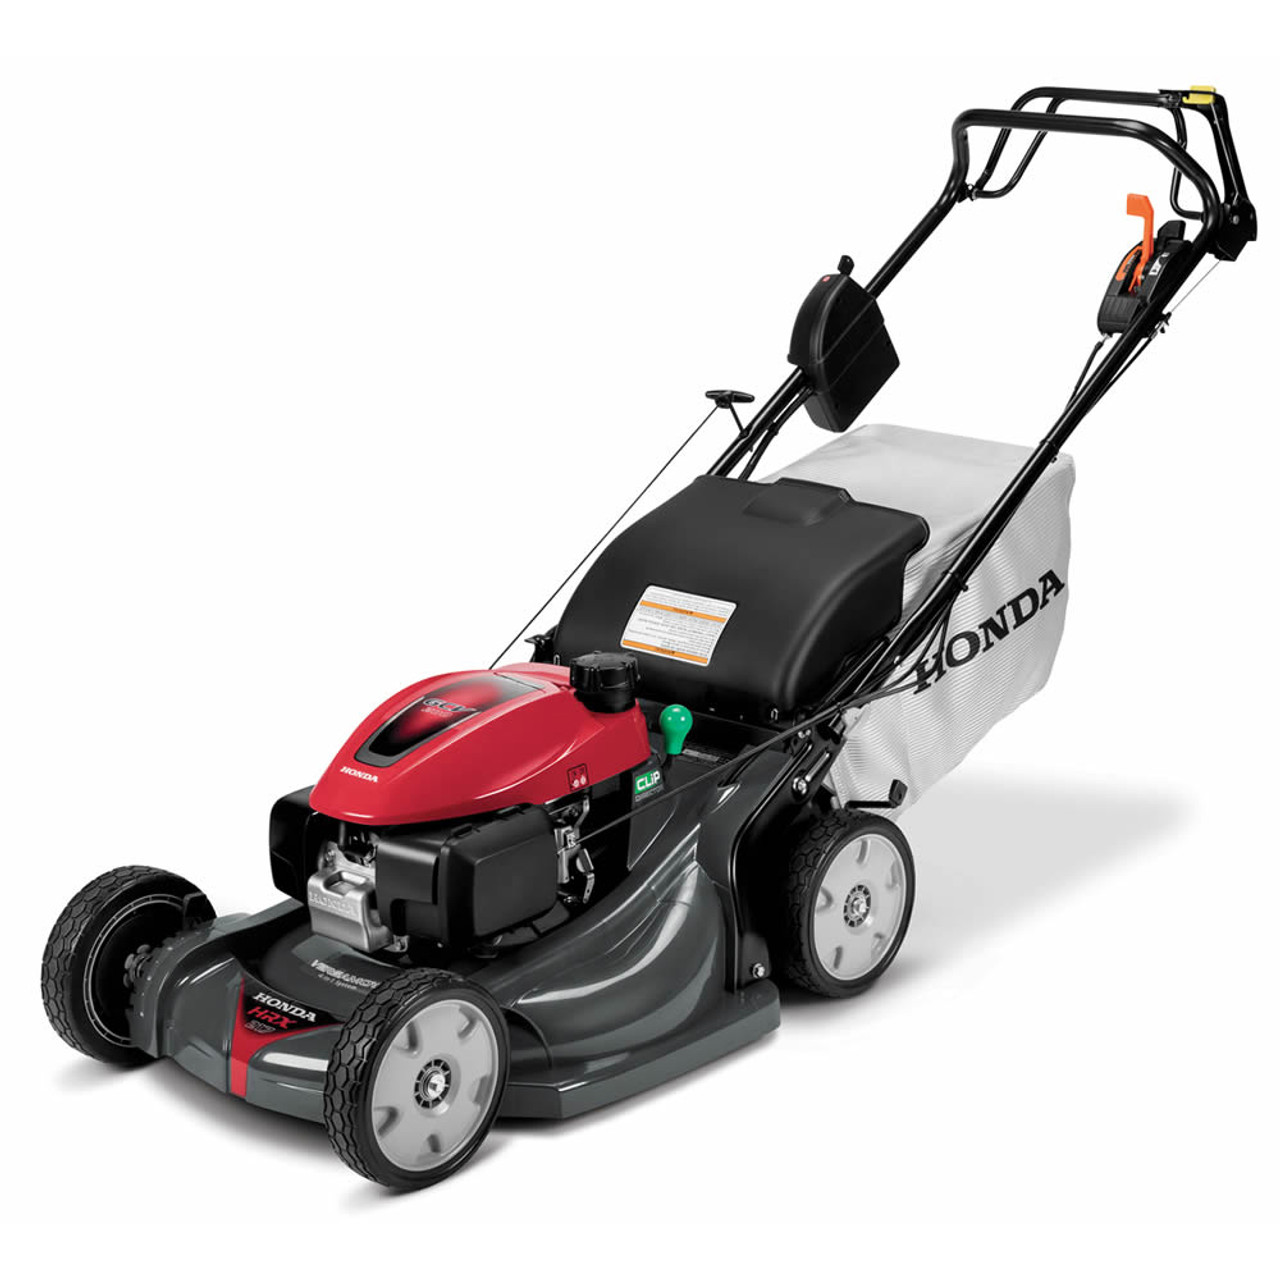 "Honda HRX217HZA 21"" Walk Behind Self-Propelled Lawn Mower w/ GCV200 Engine & Electric Start Image 3"